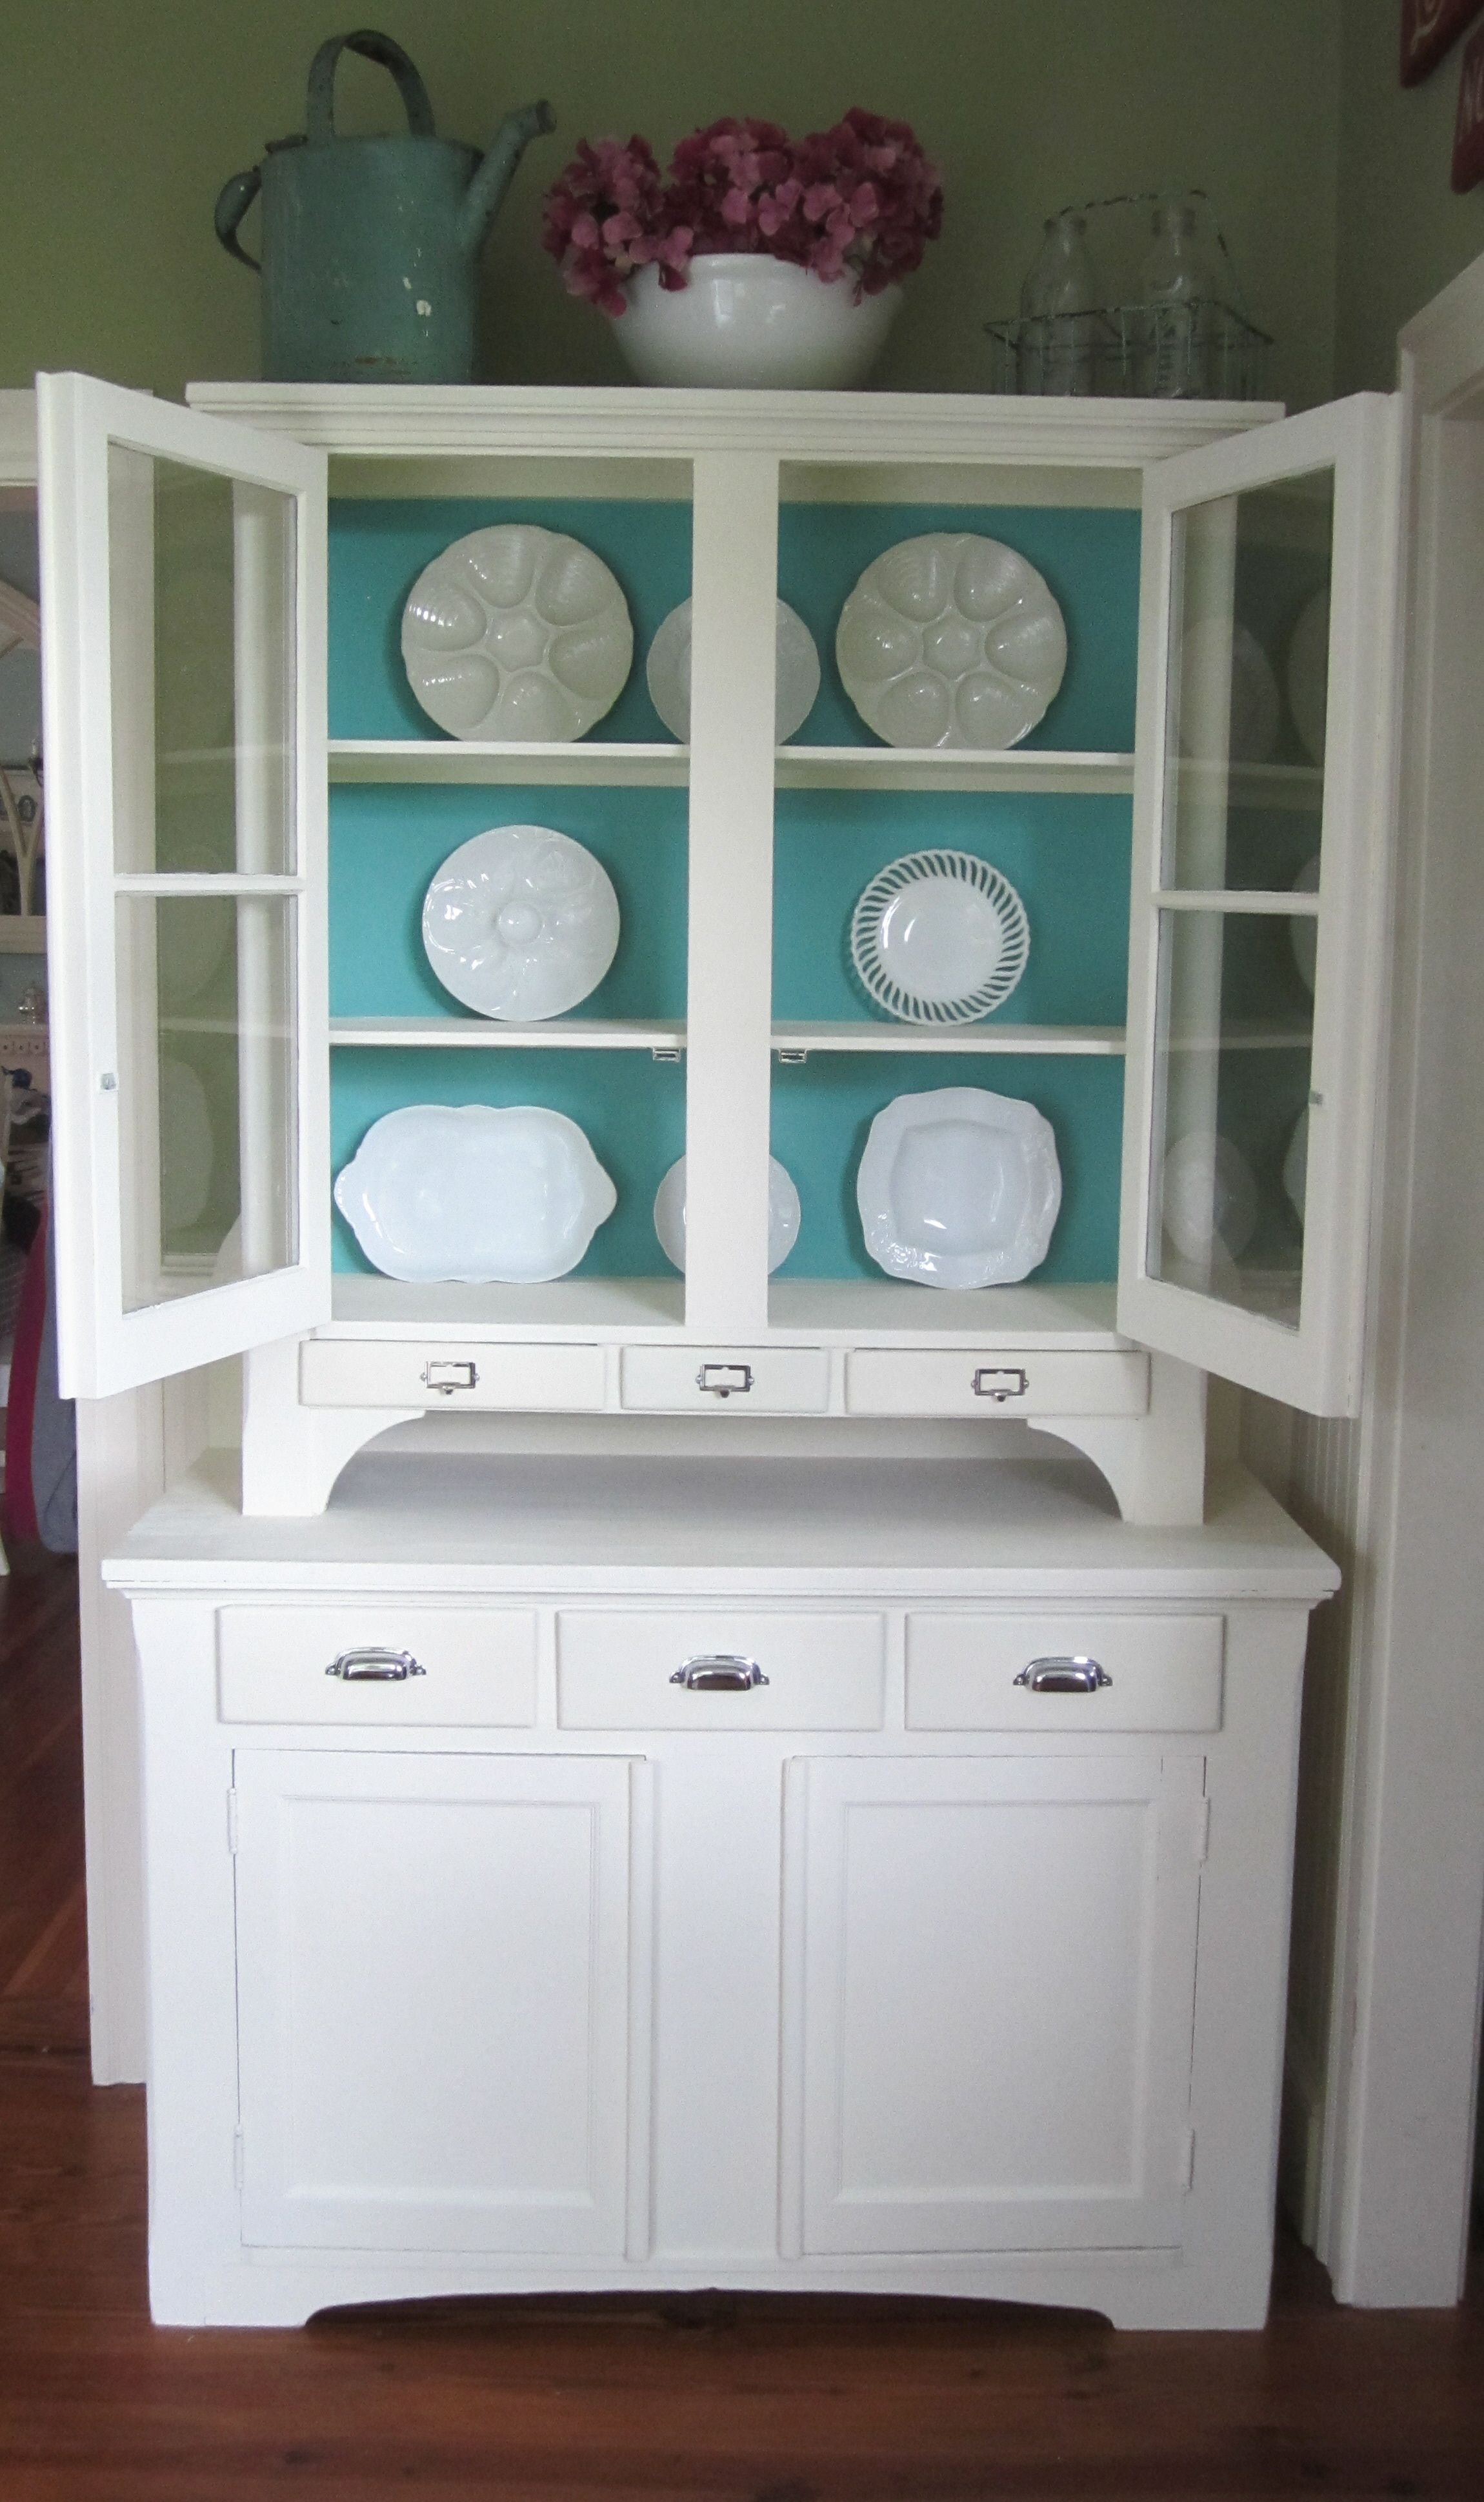 Step Back Hutch after being transformed with Annie Sloan paint ...